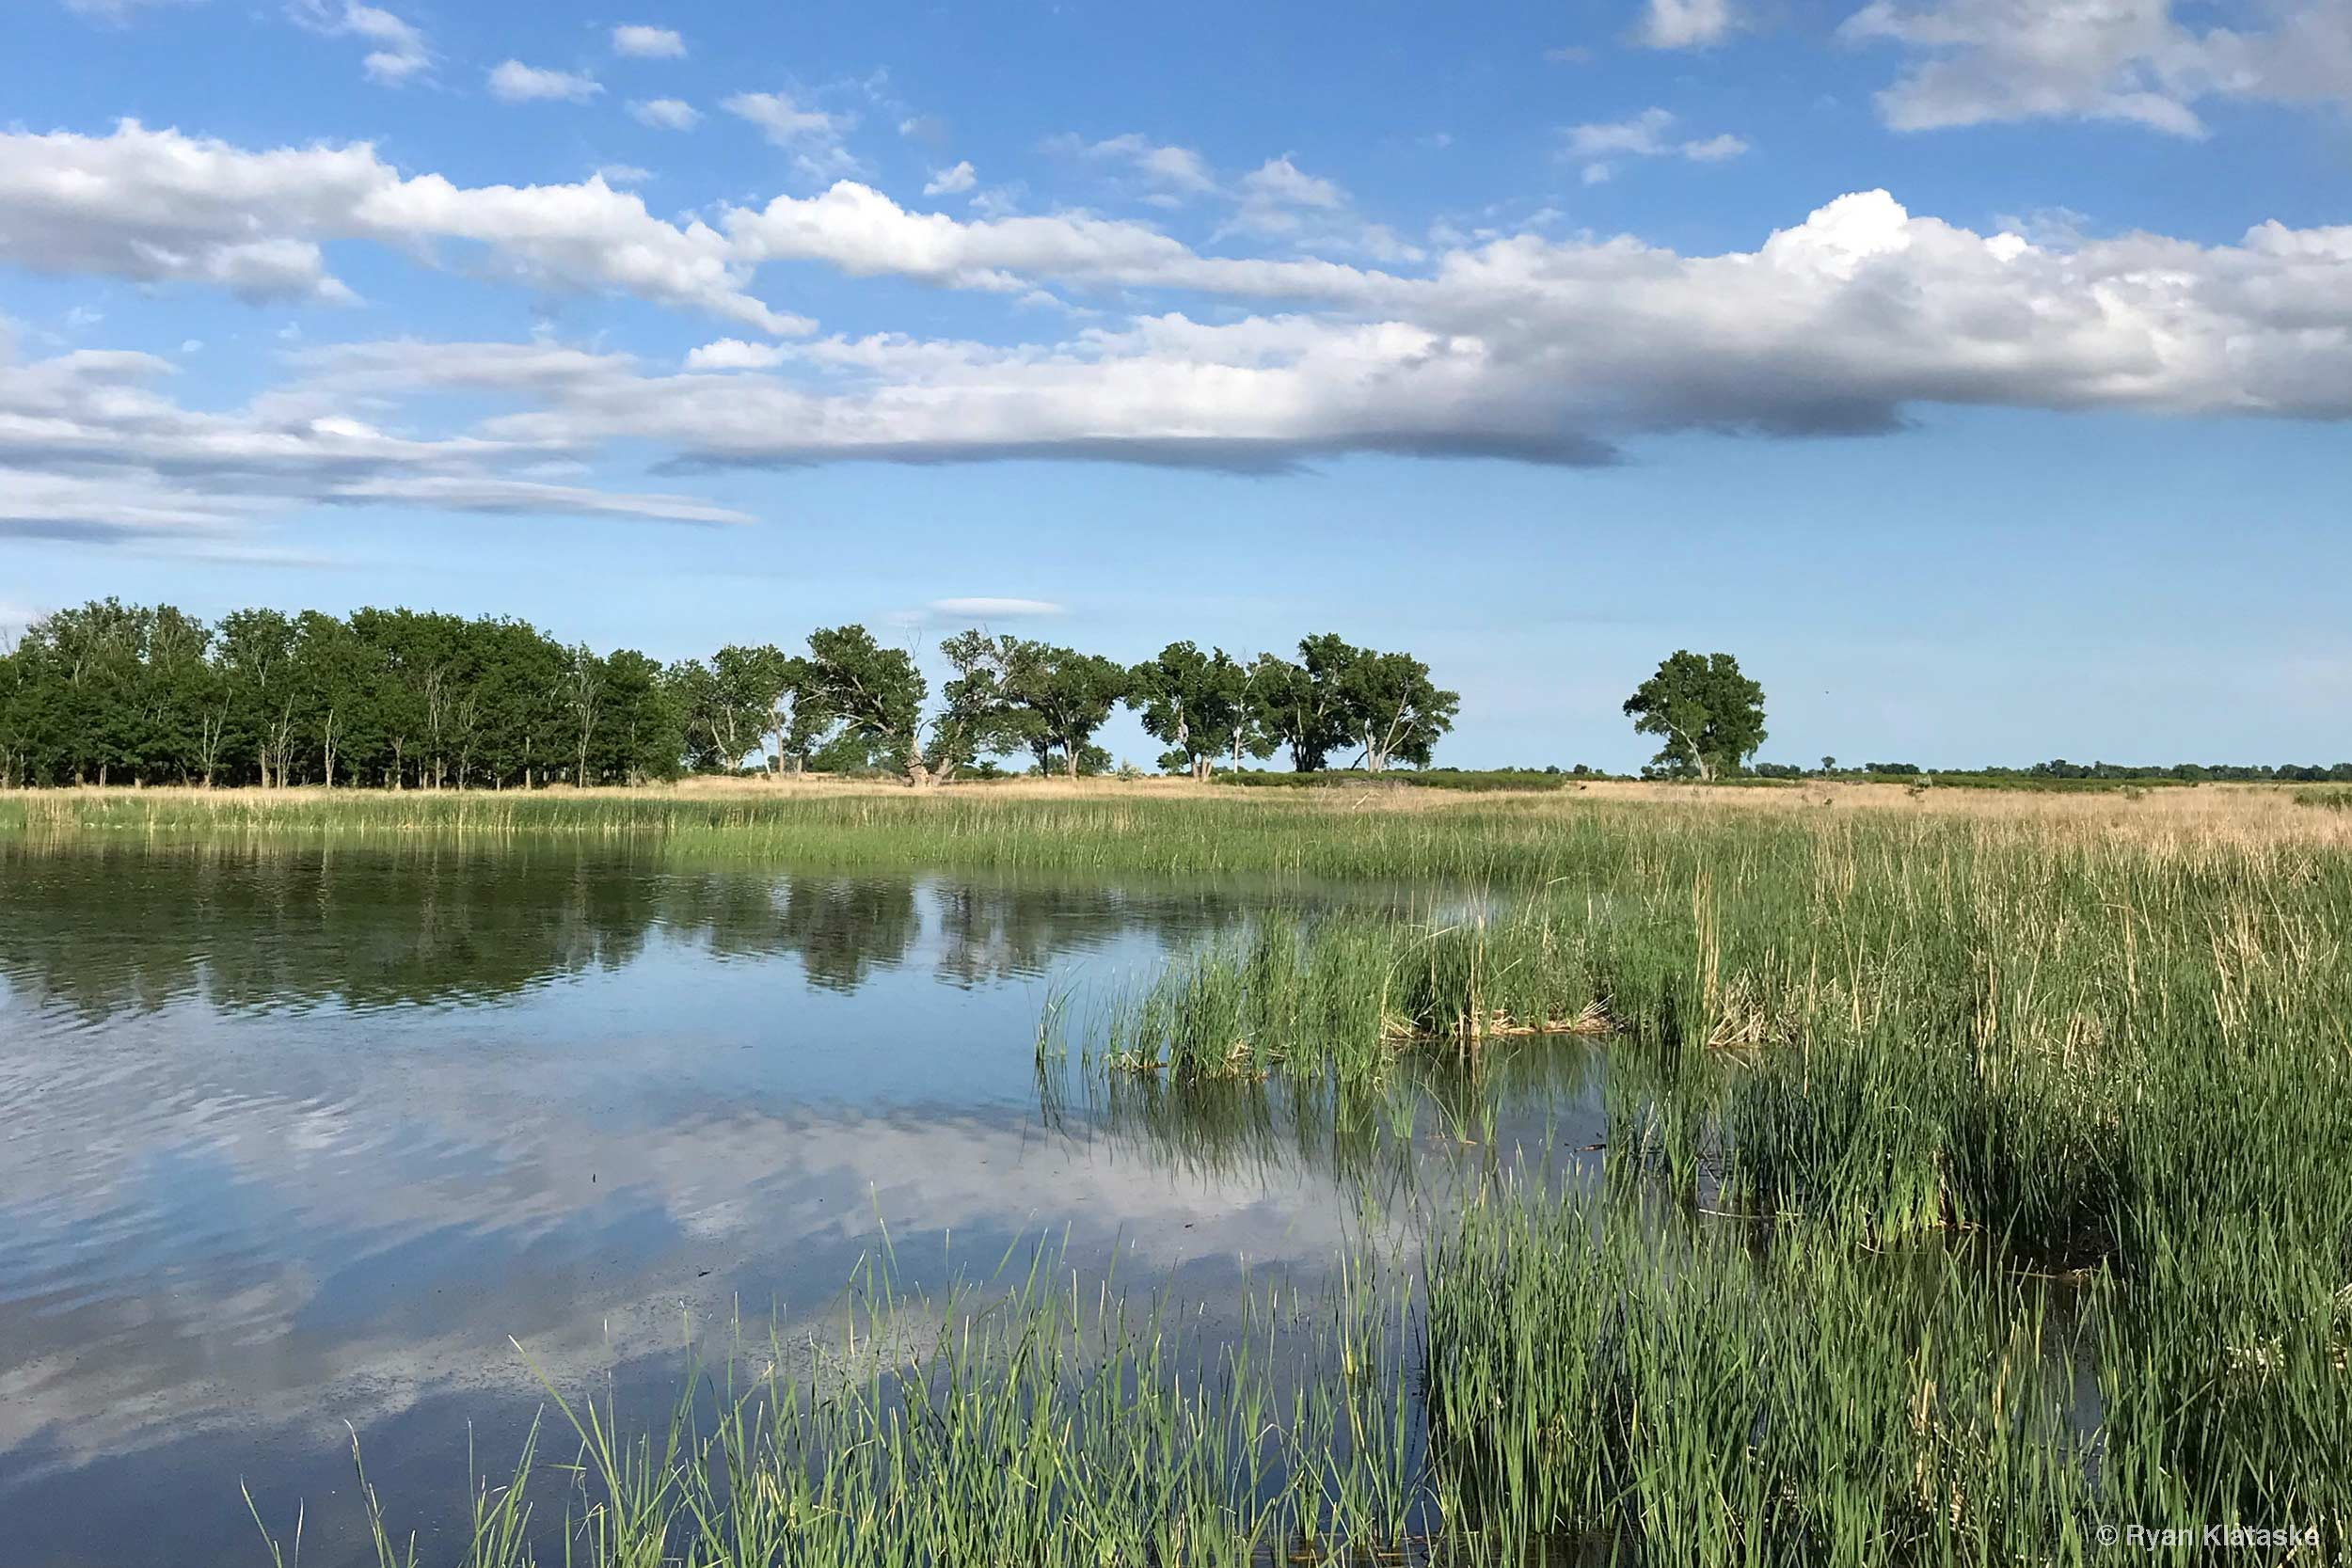 The future of Quivira National Wildlife Refuge is in peril. We need leaders that support restoring senior water rights. Photo by Ryan Klataske.